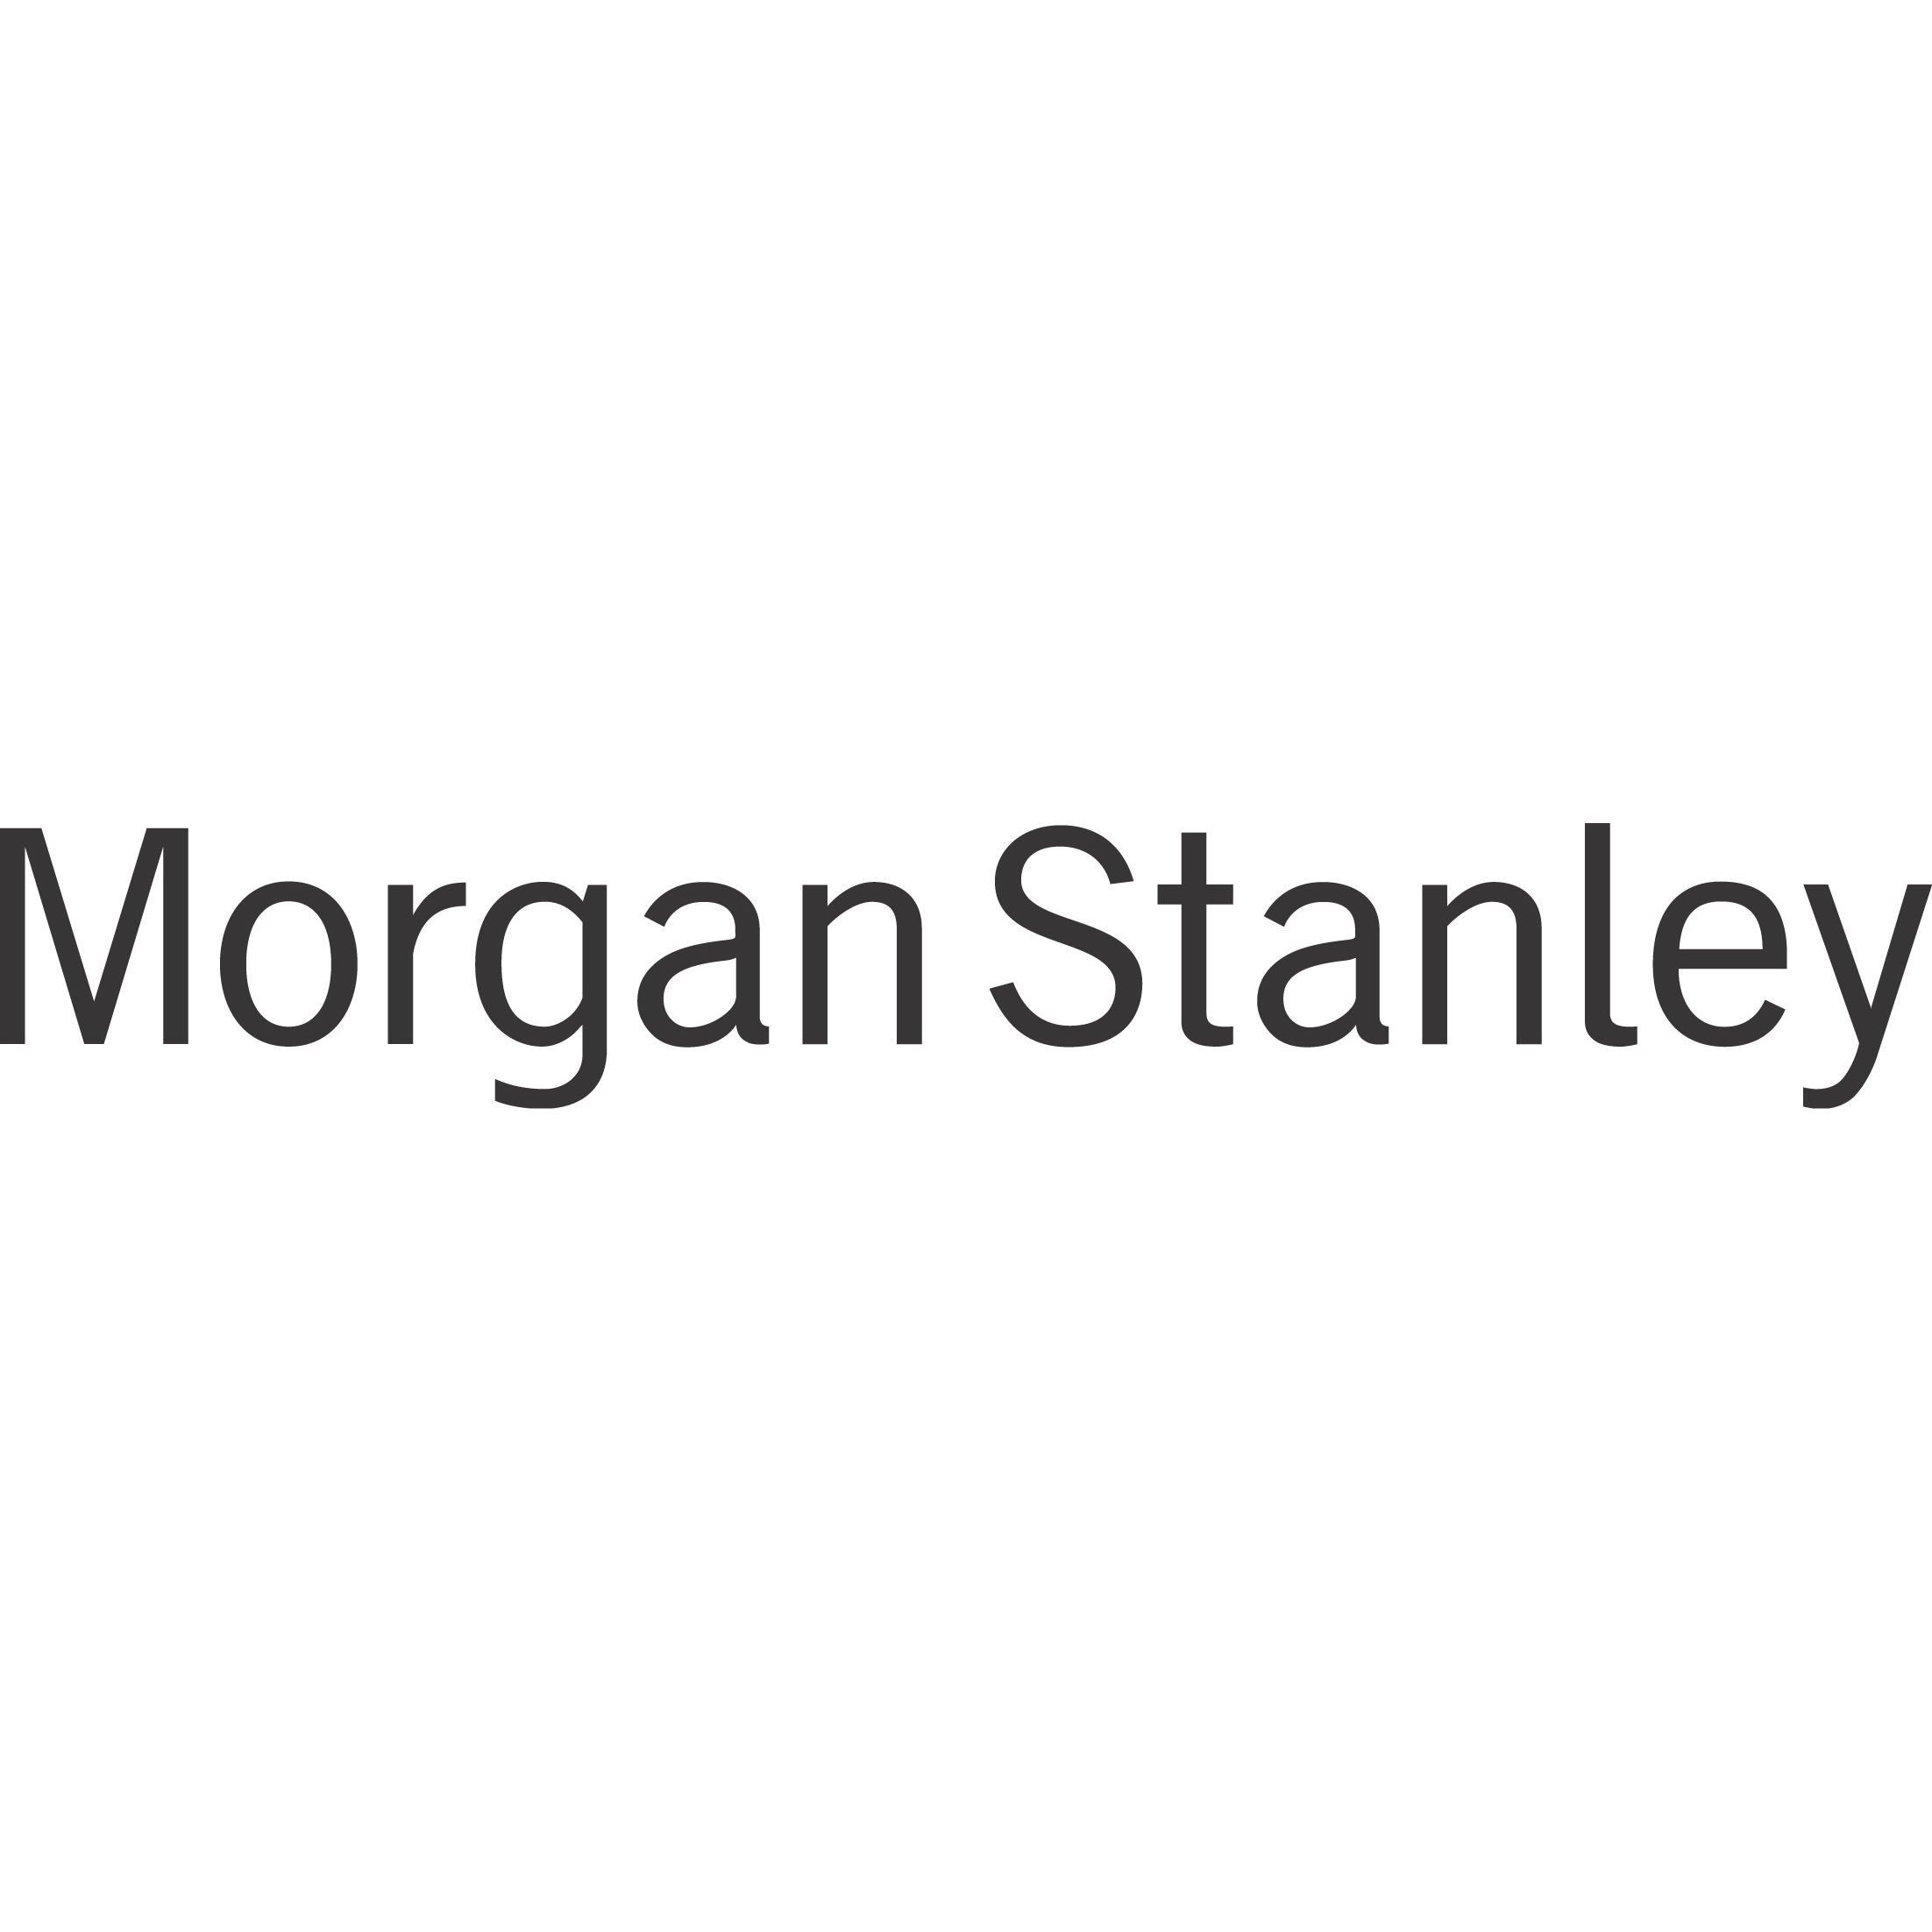 Wayne Choisnet - Morgan Stanley | Financial Advisor in Tulsa,Oklahoma